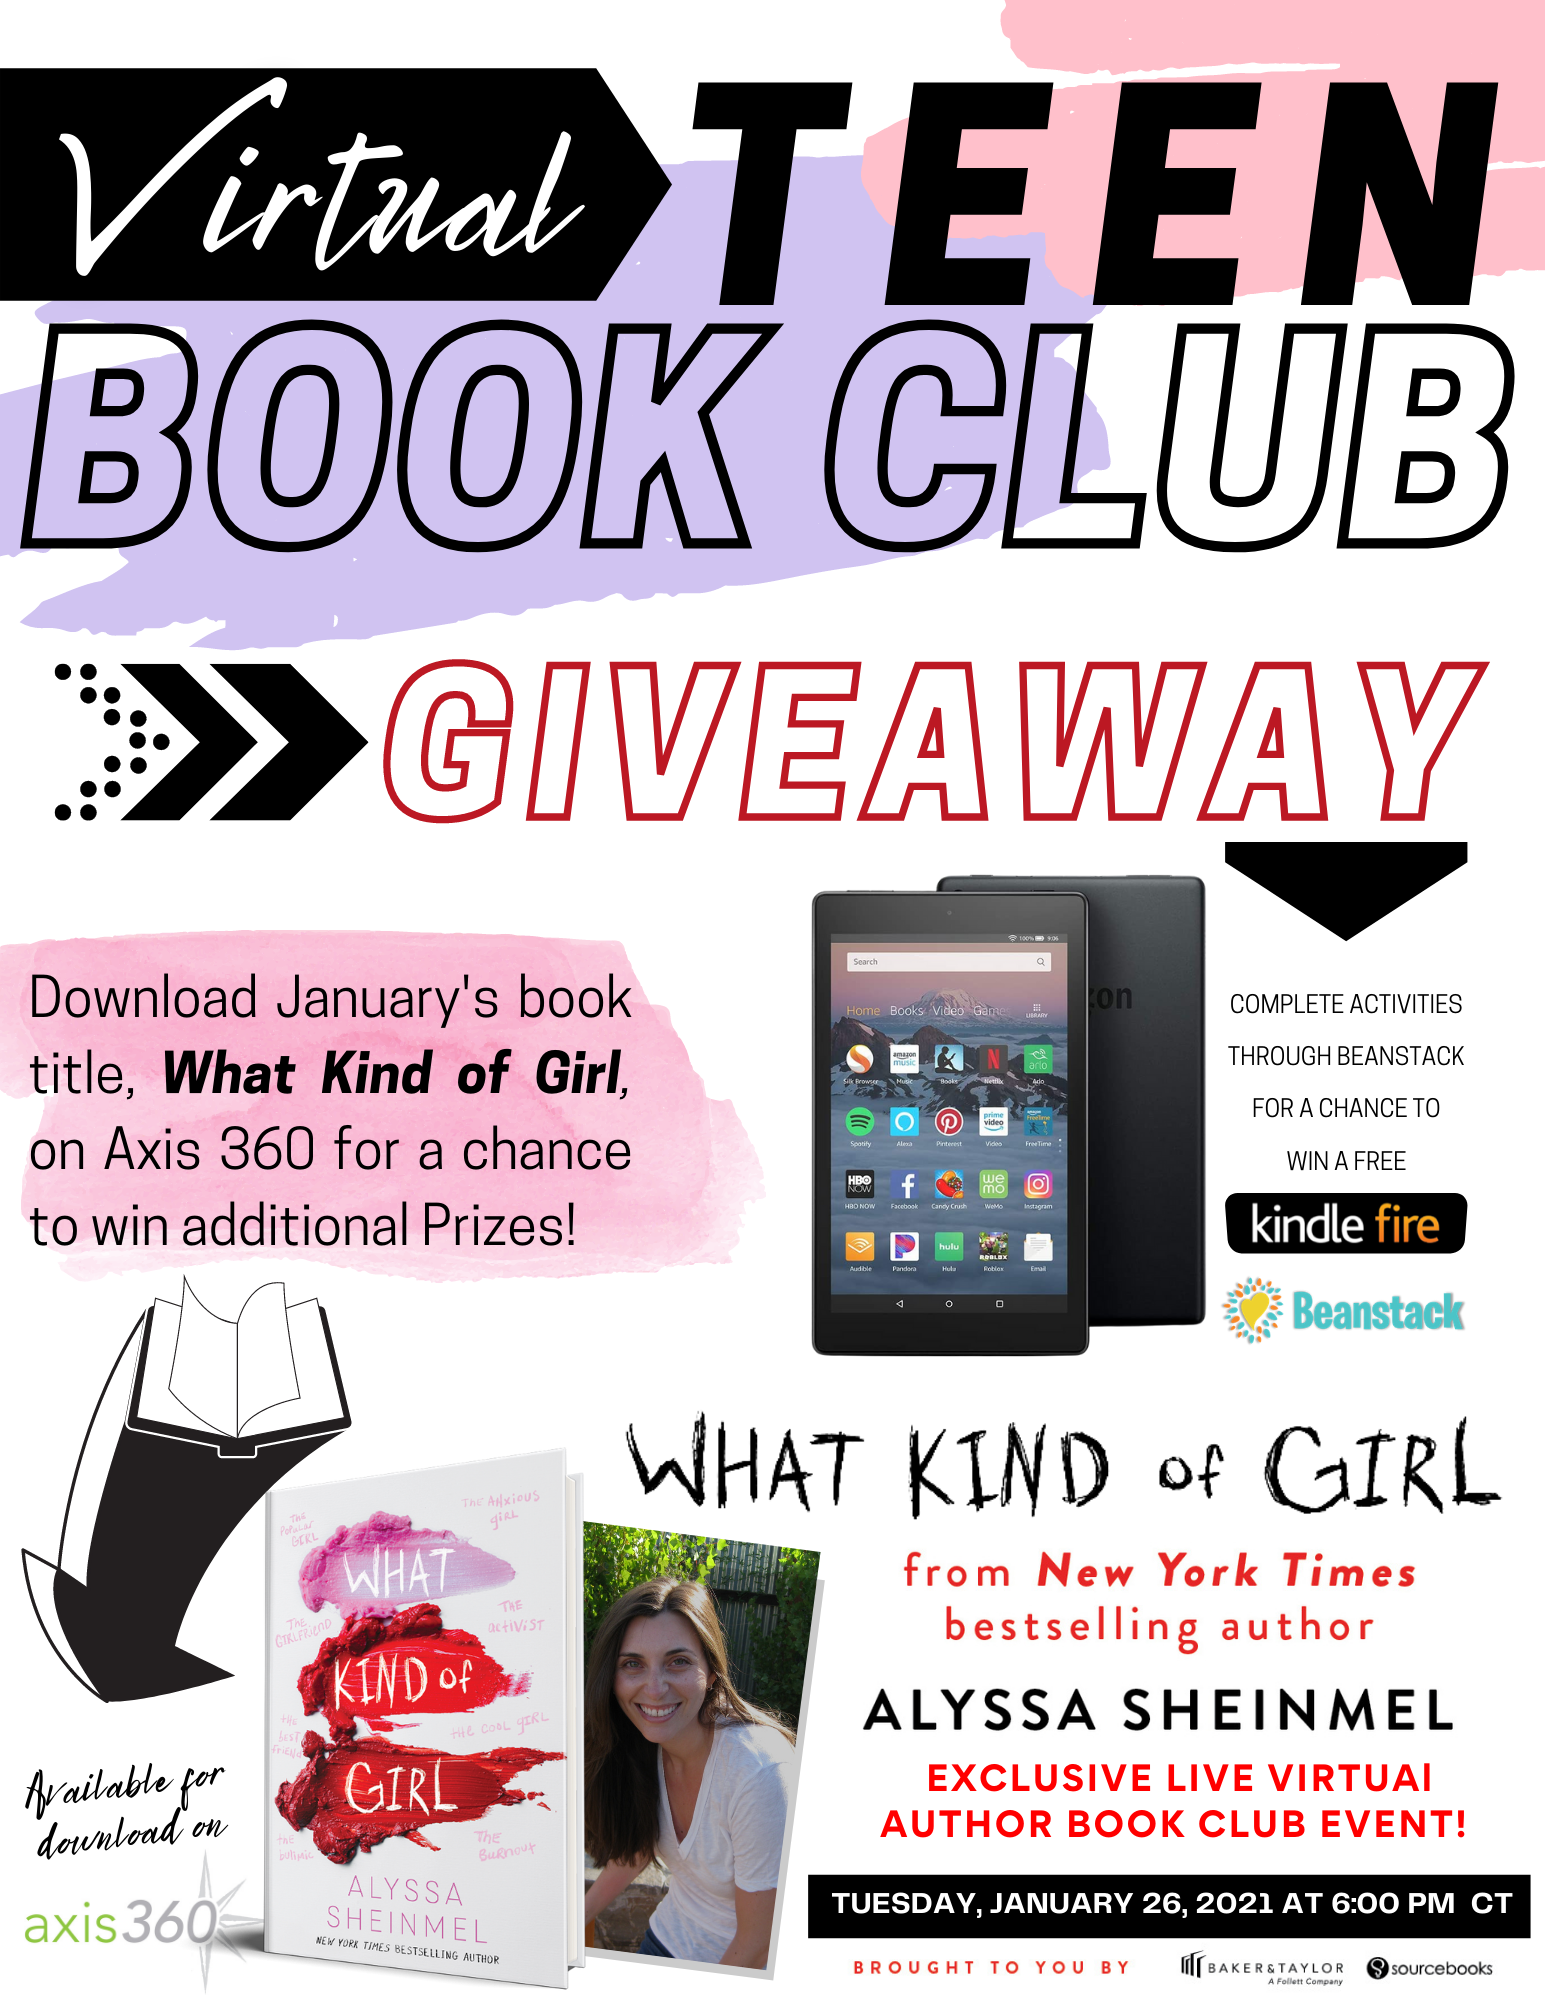 Don't miss out on January's Virtual Teen Book Club title, What Kind of Girl by Alyssa Sheinmel, a New York Times Bestselling Author.